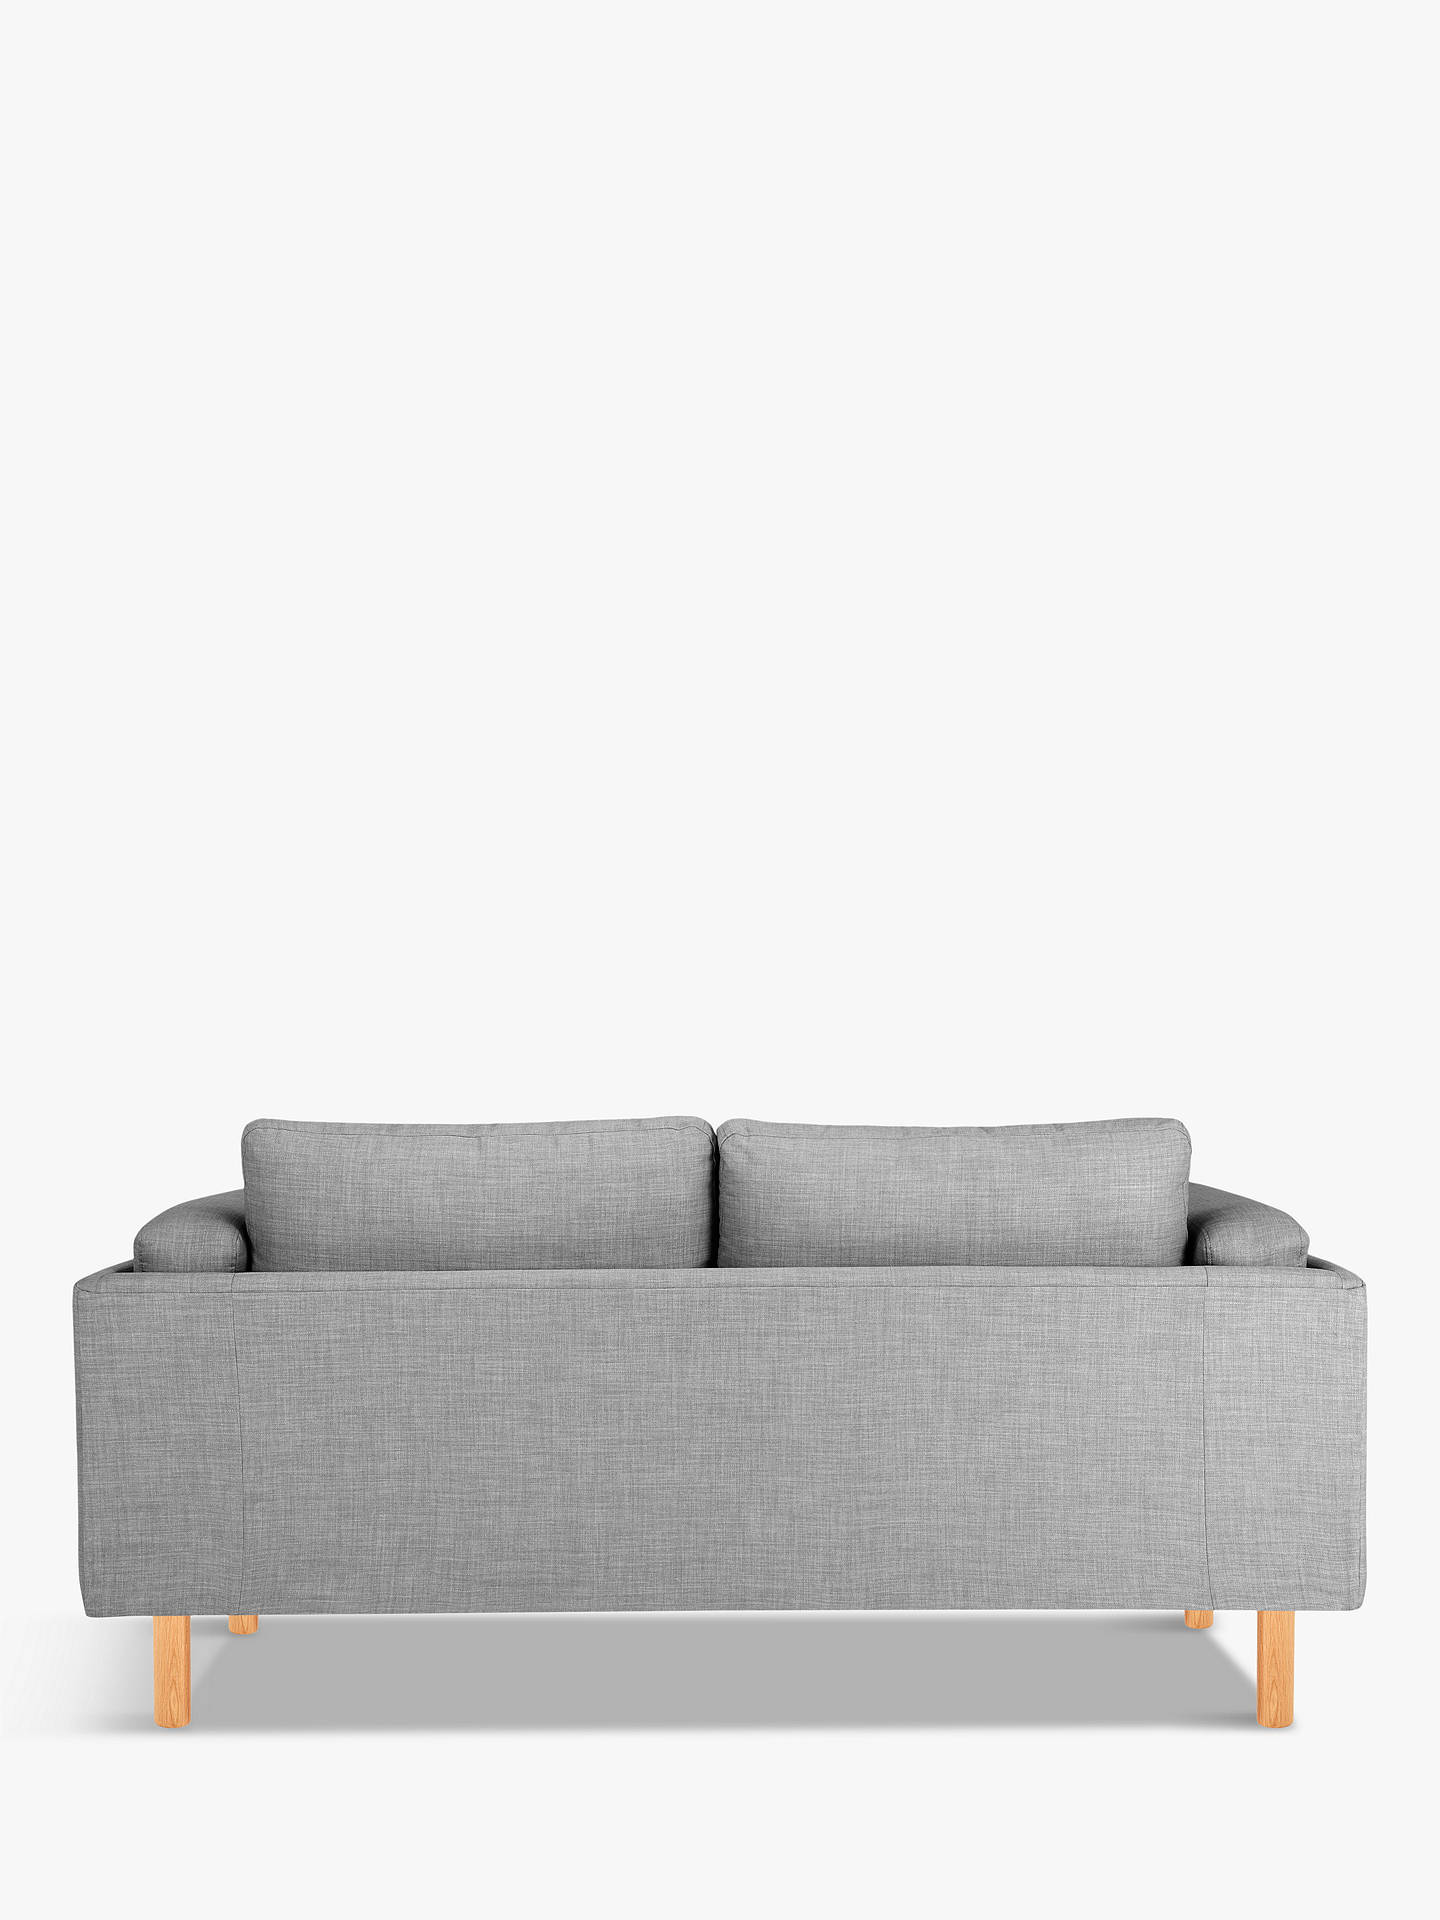 Buy Design Project by John Lewis No.002 Medium 2 Seater Sofa Online at johnlewis.com